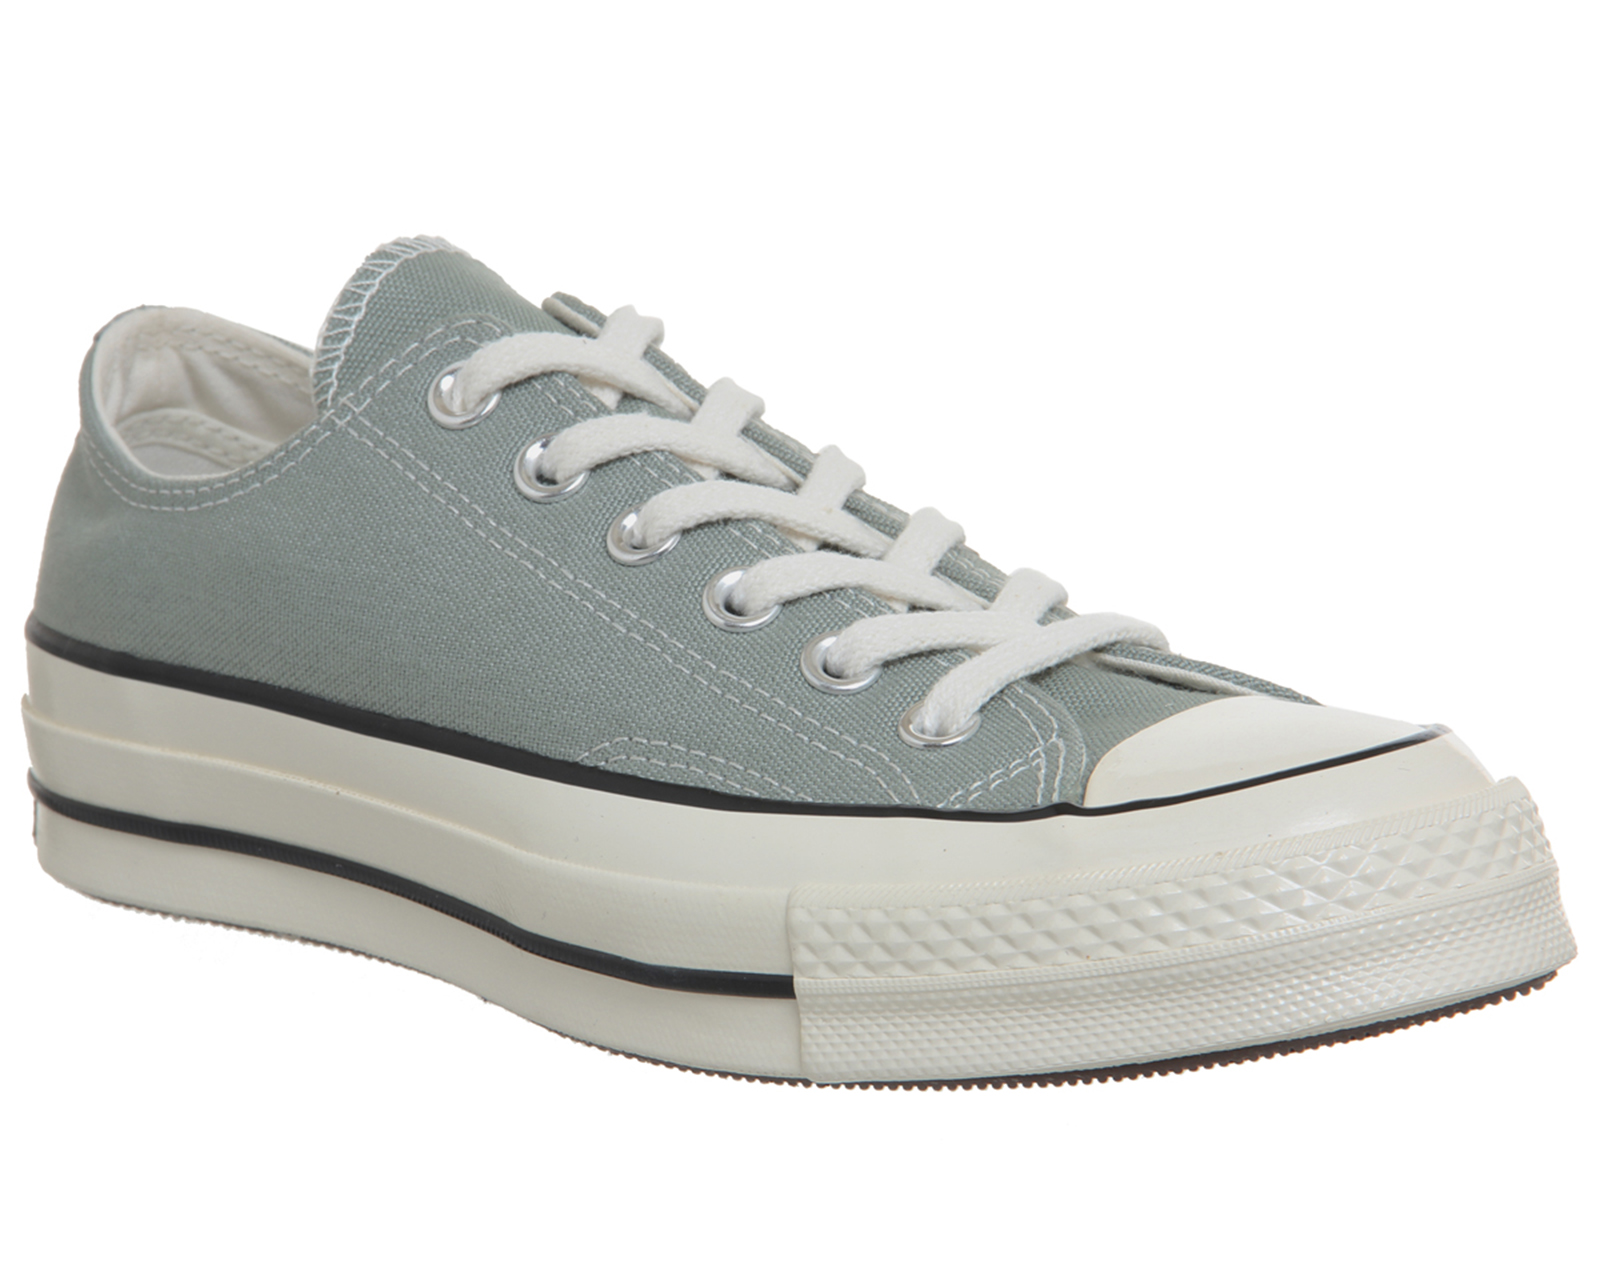 06a4cd0b20b1 Sentinel Converse All Star Ox 70 Trainers Mica Green Black Egret Trainers  Shoes